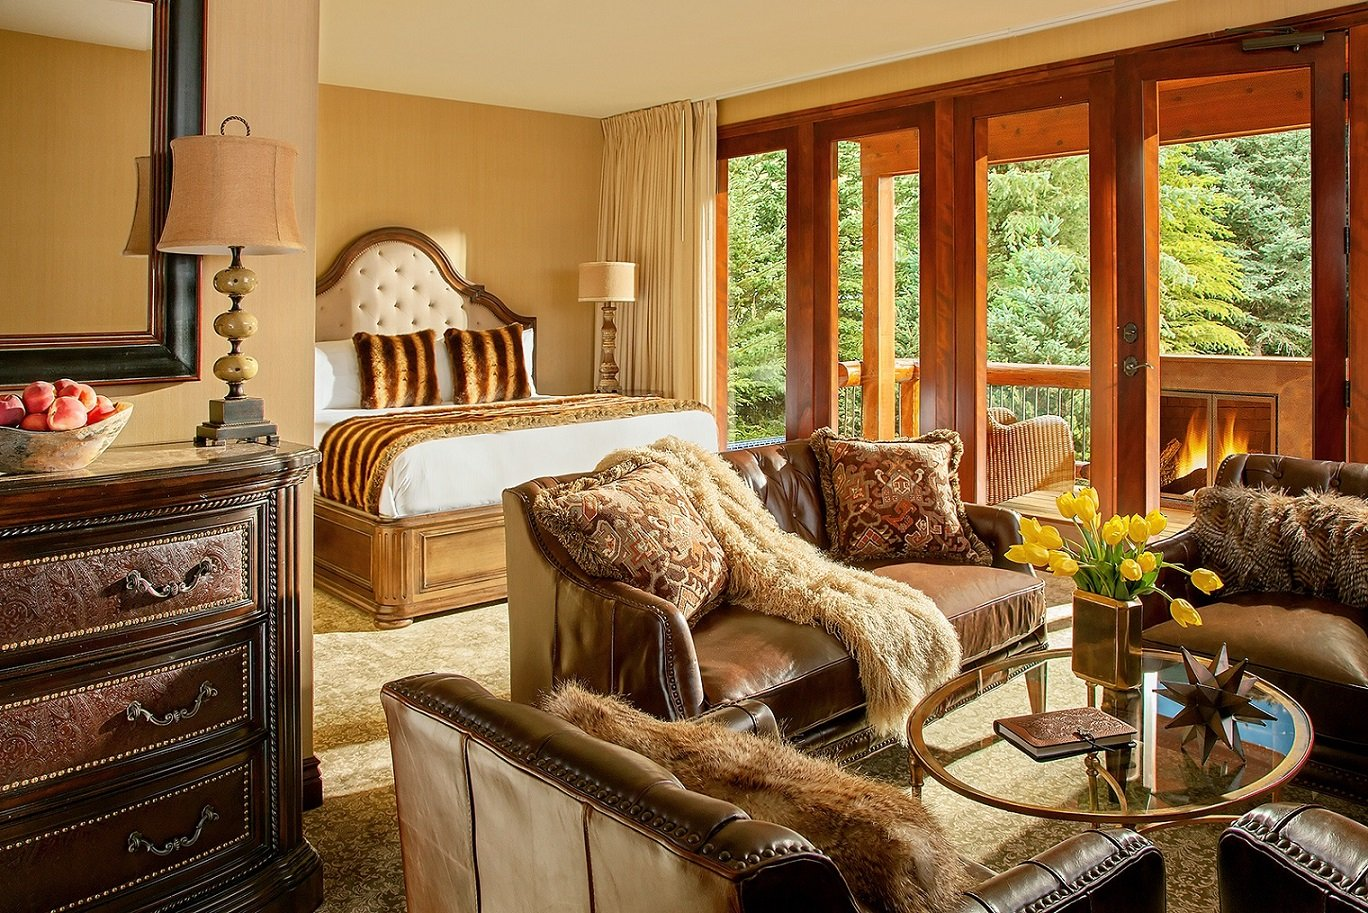 Spa Suites - Stay 4 Nights and get Fifth Night Free